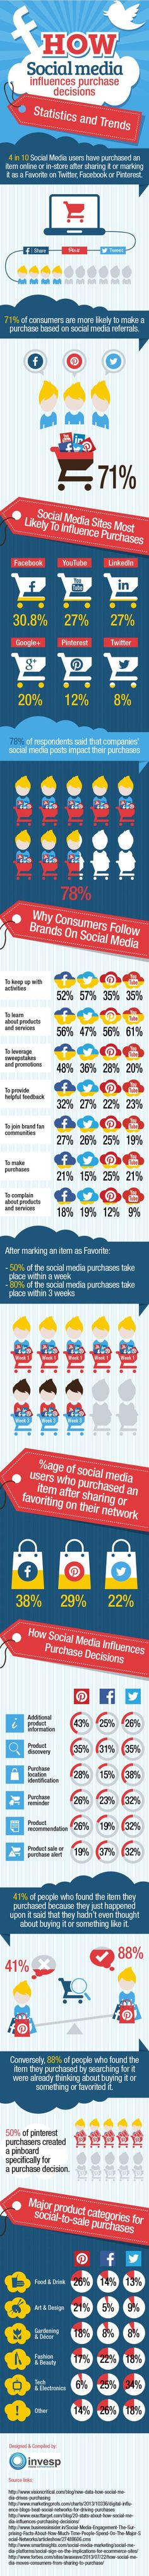 How social media influences purchase decisions #infografia #infographic #socialmedia #marketing